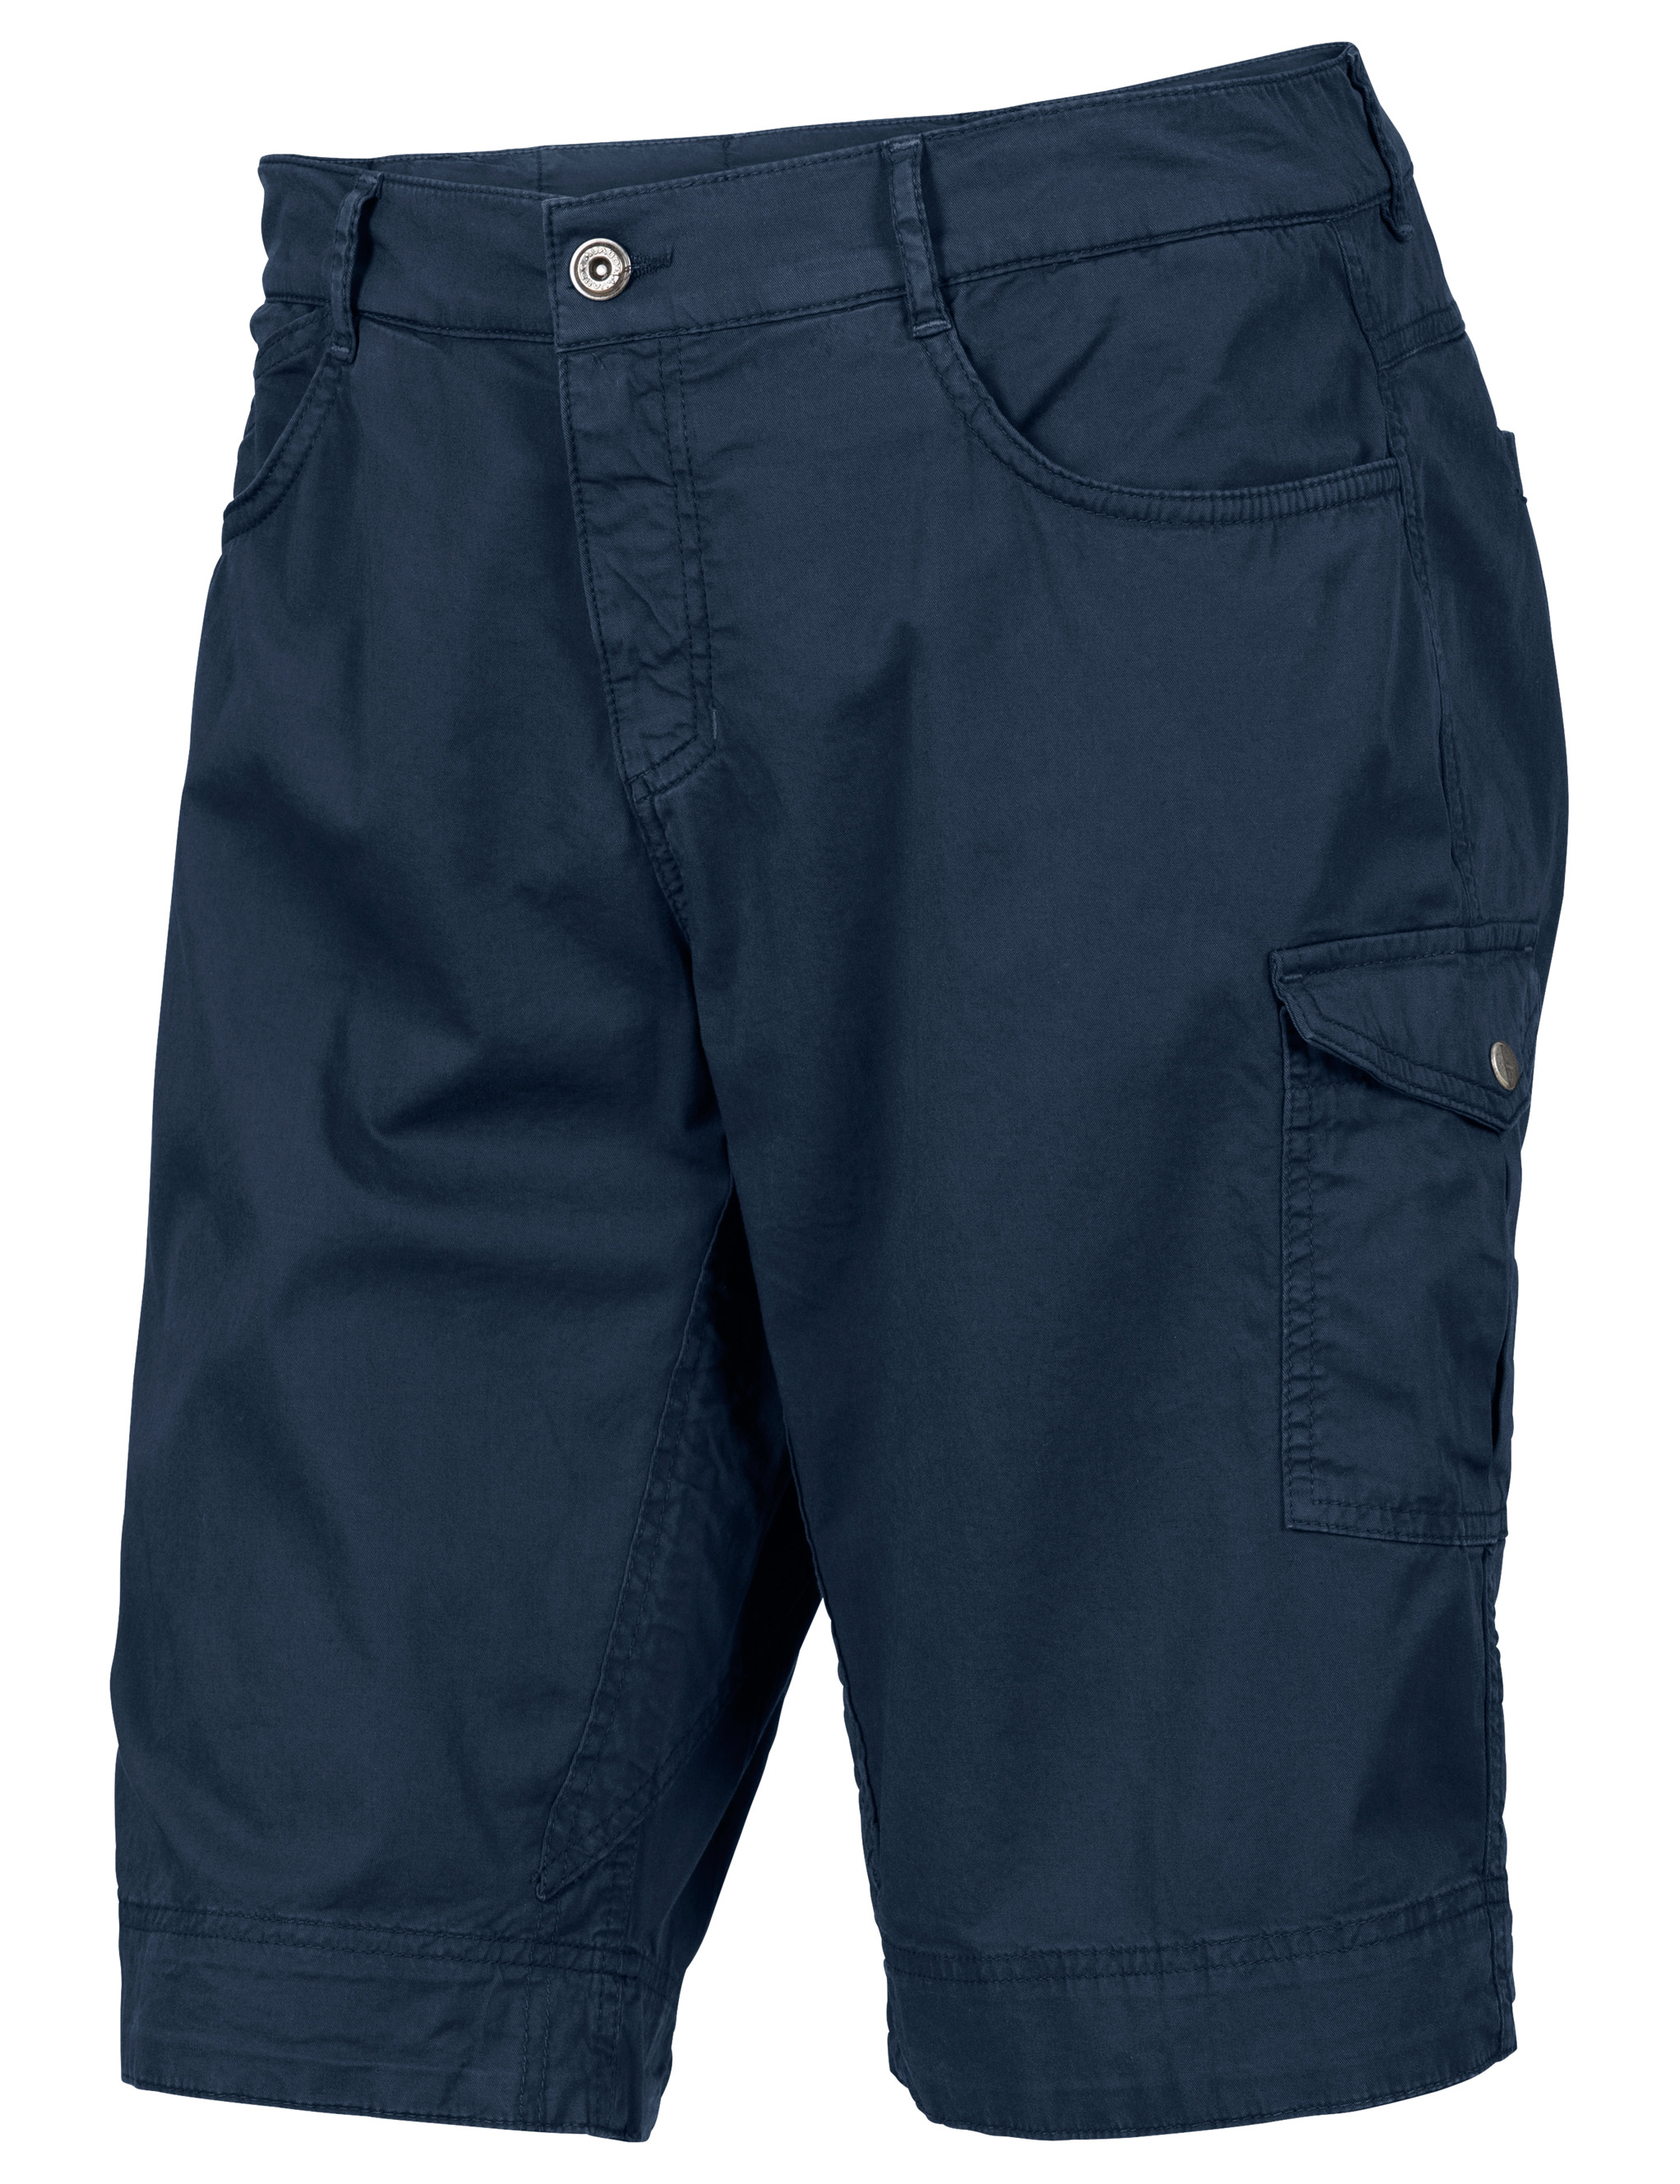 VAUDE Men´s Cyclist Shorts marine Größe L - schneider-sports